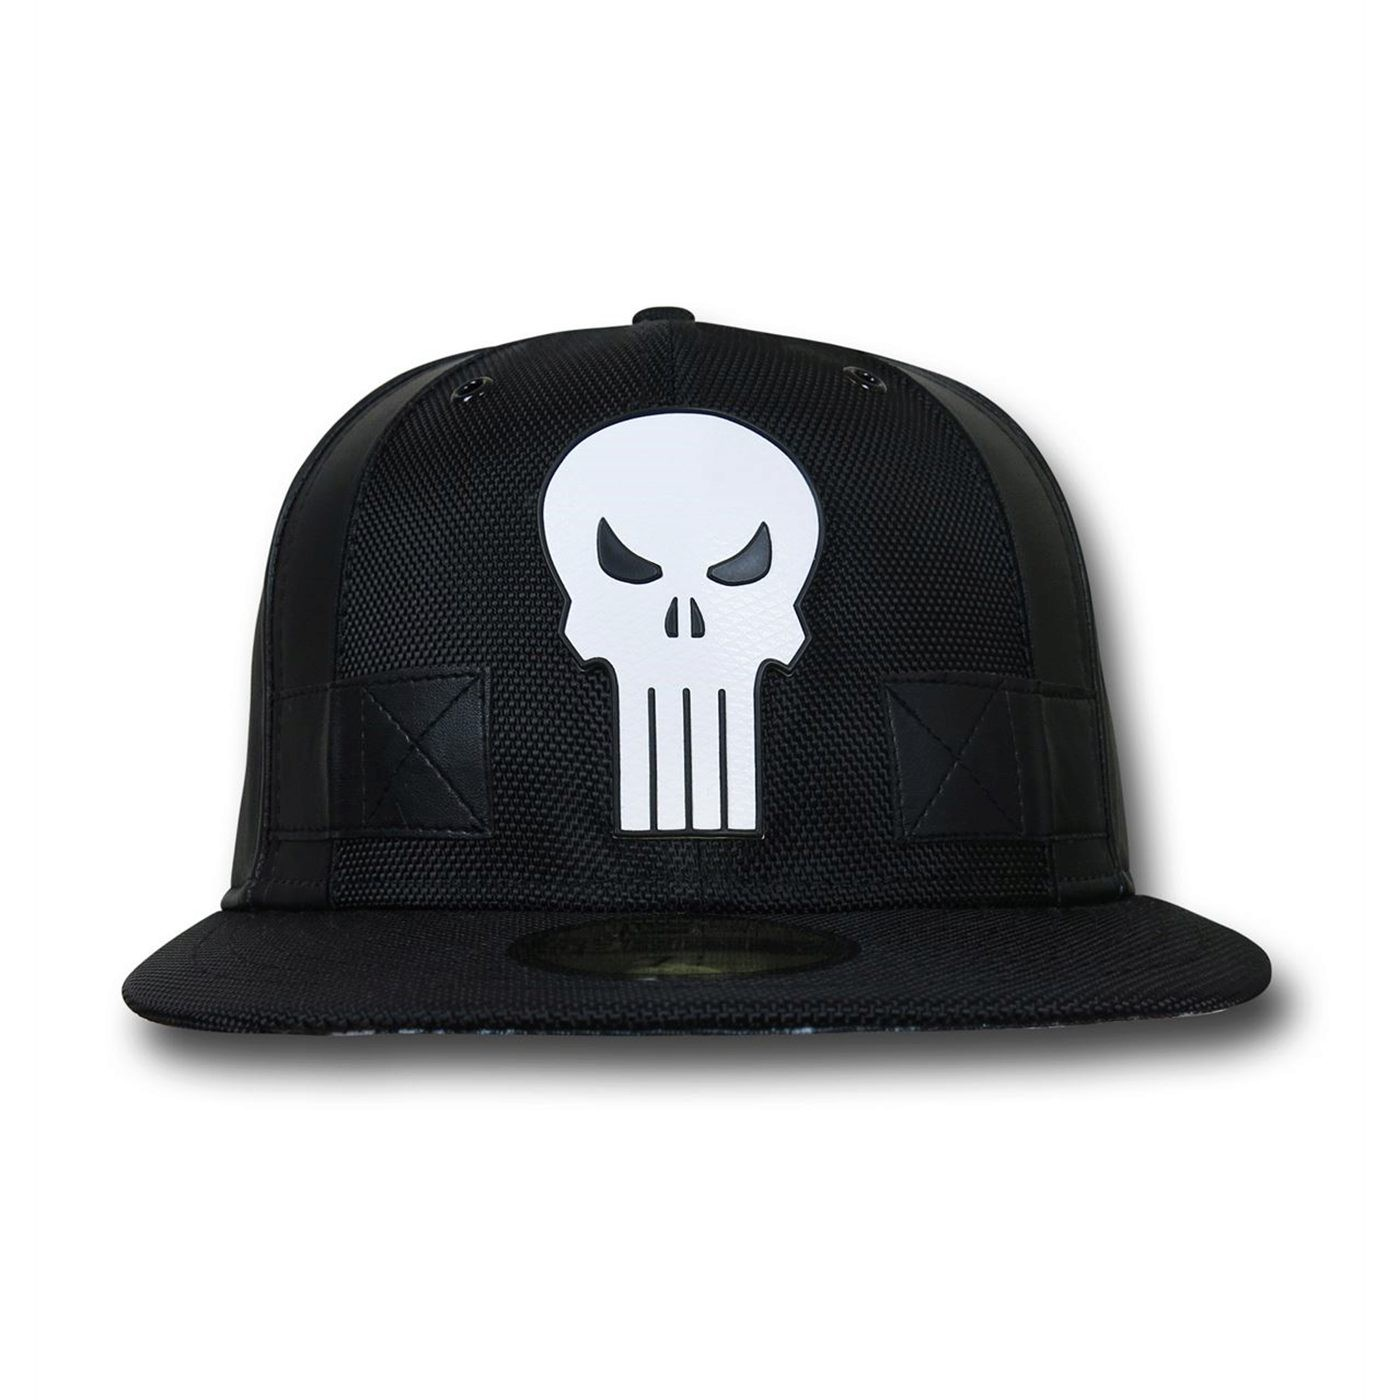 Punisher Armor New Era 59Fifty Fitted Hat